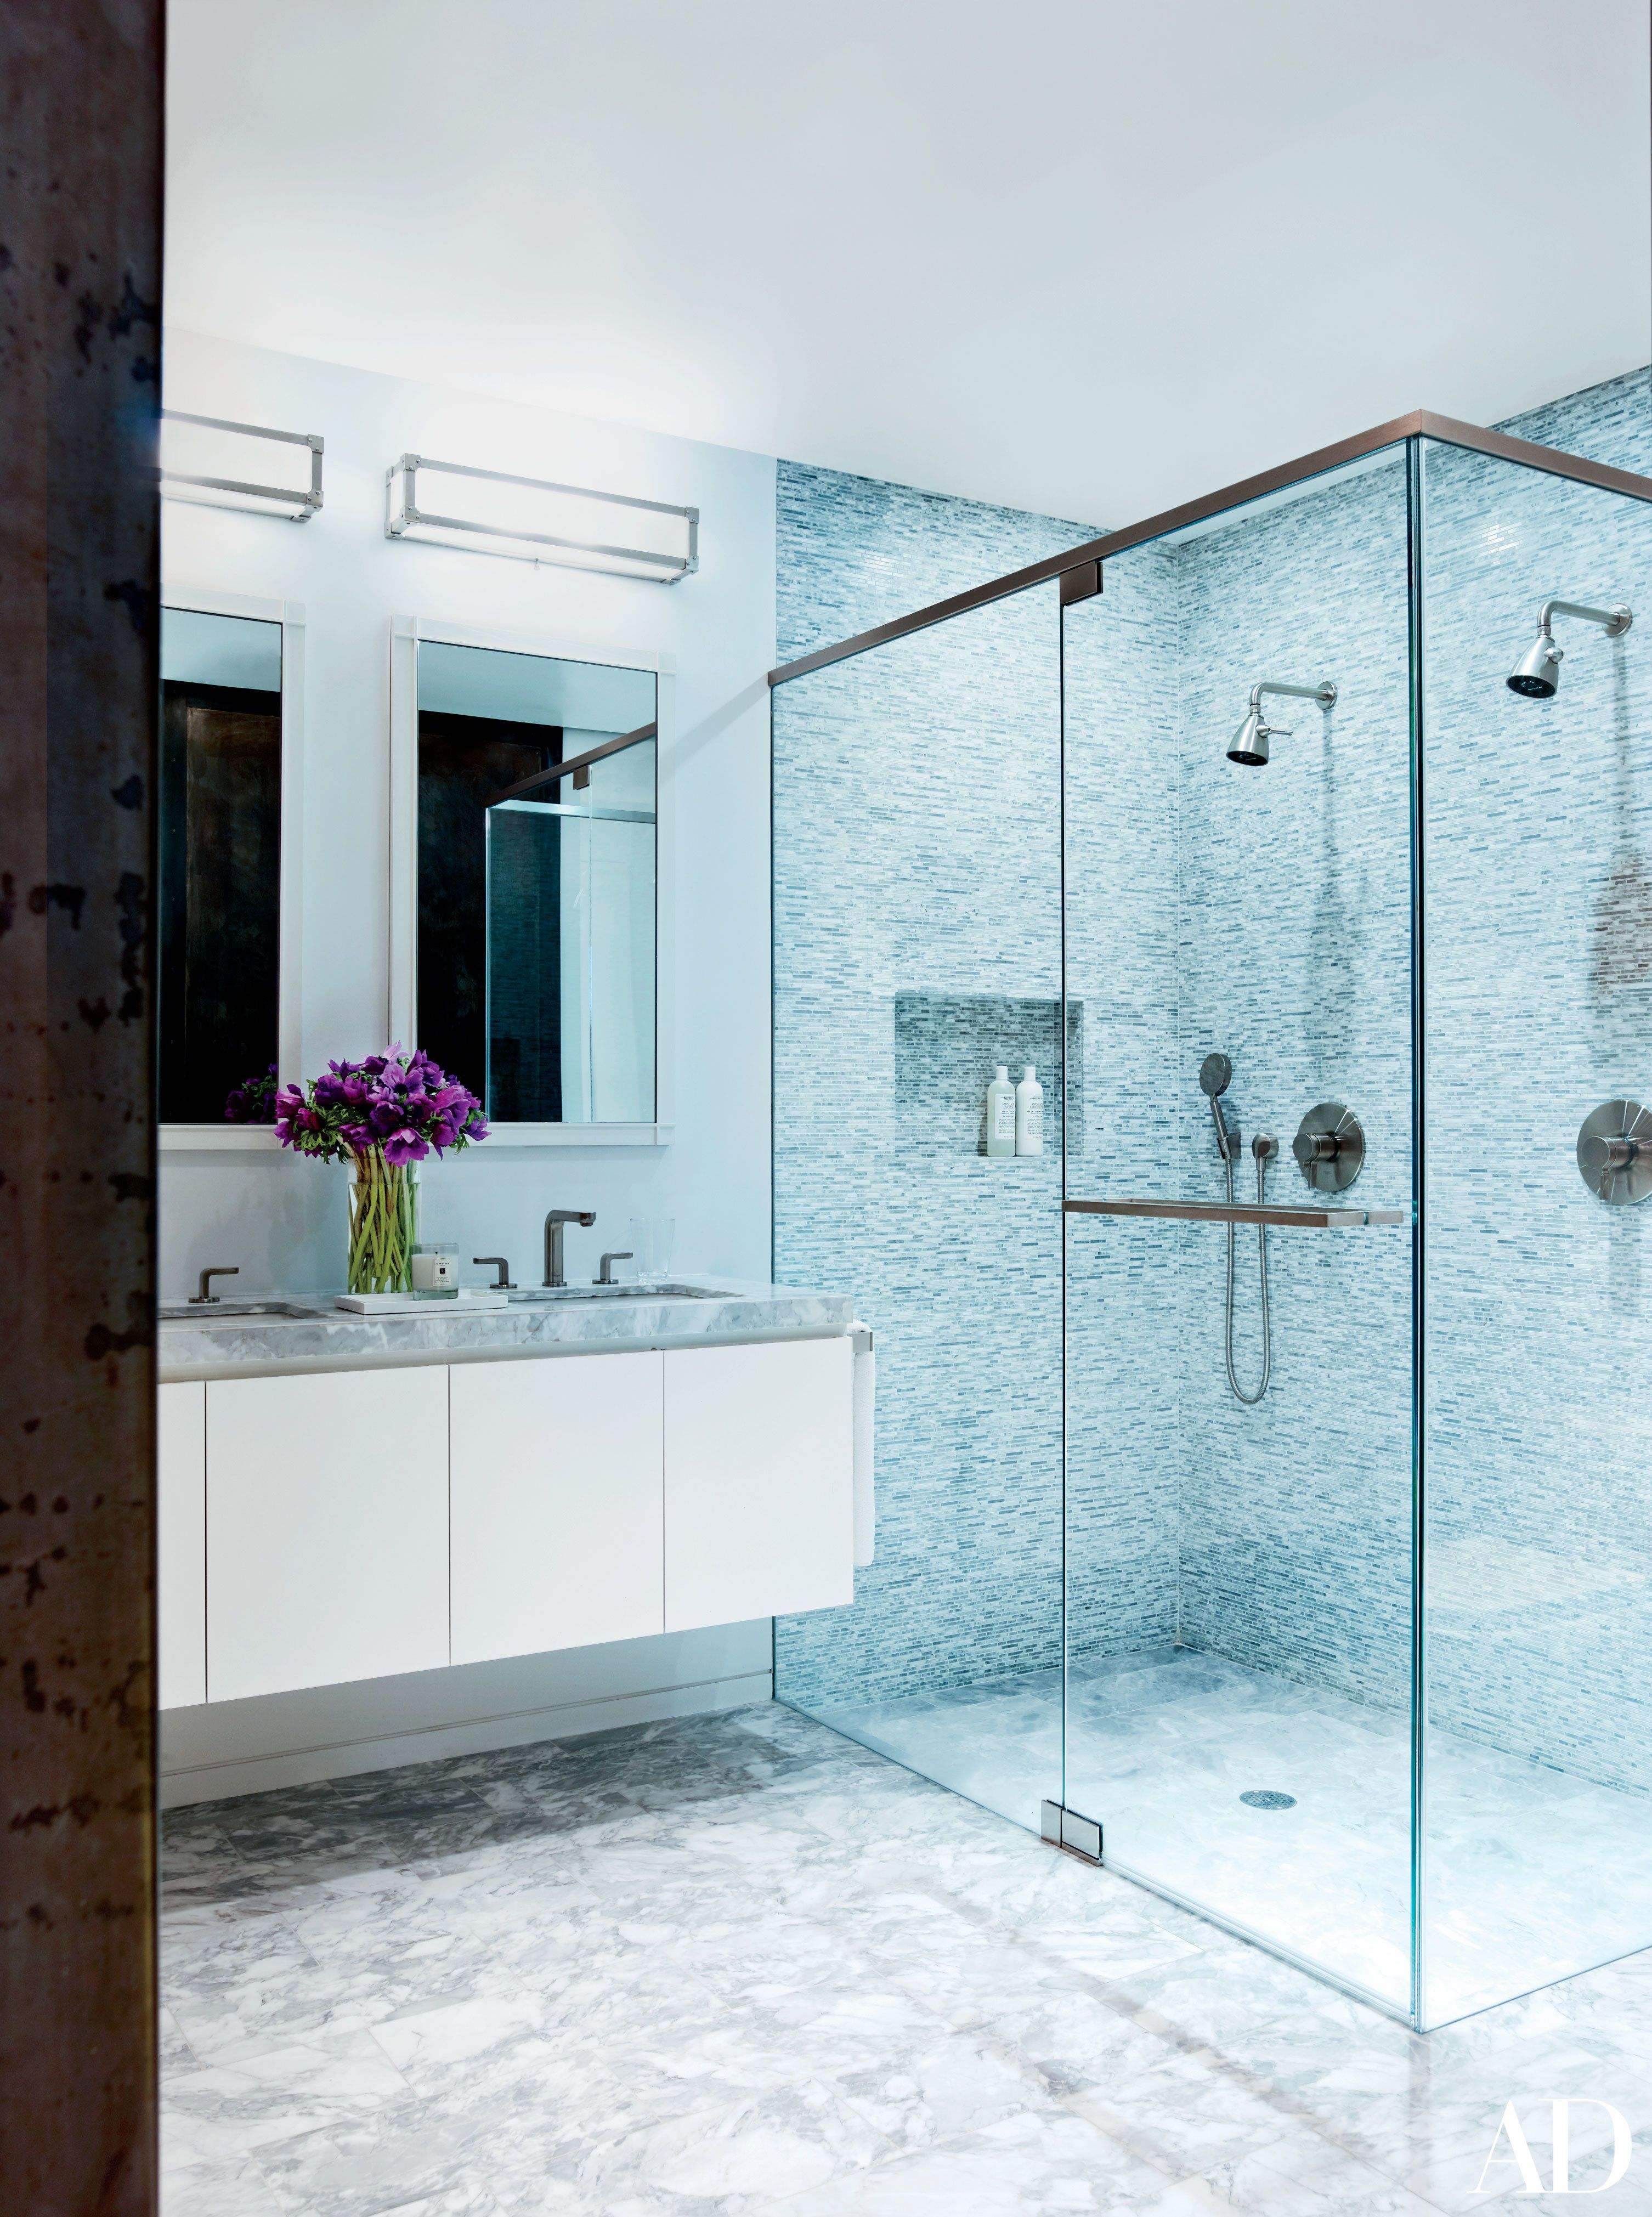 22 Luxury Bathrooms In Celebrity Homes  Architectural Digest Custom Pictures Of Luxury Bathrooms Review